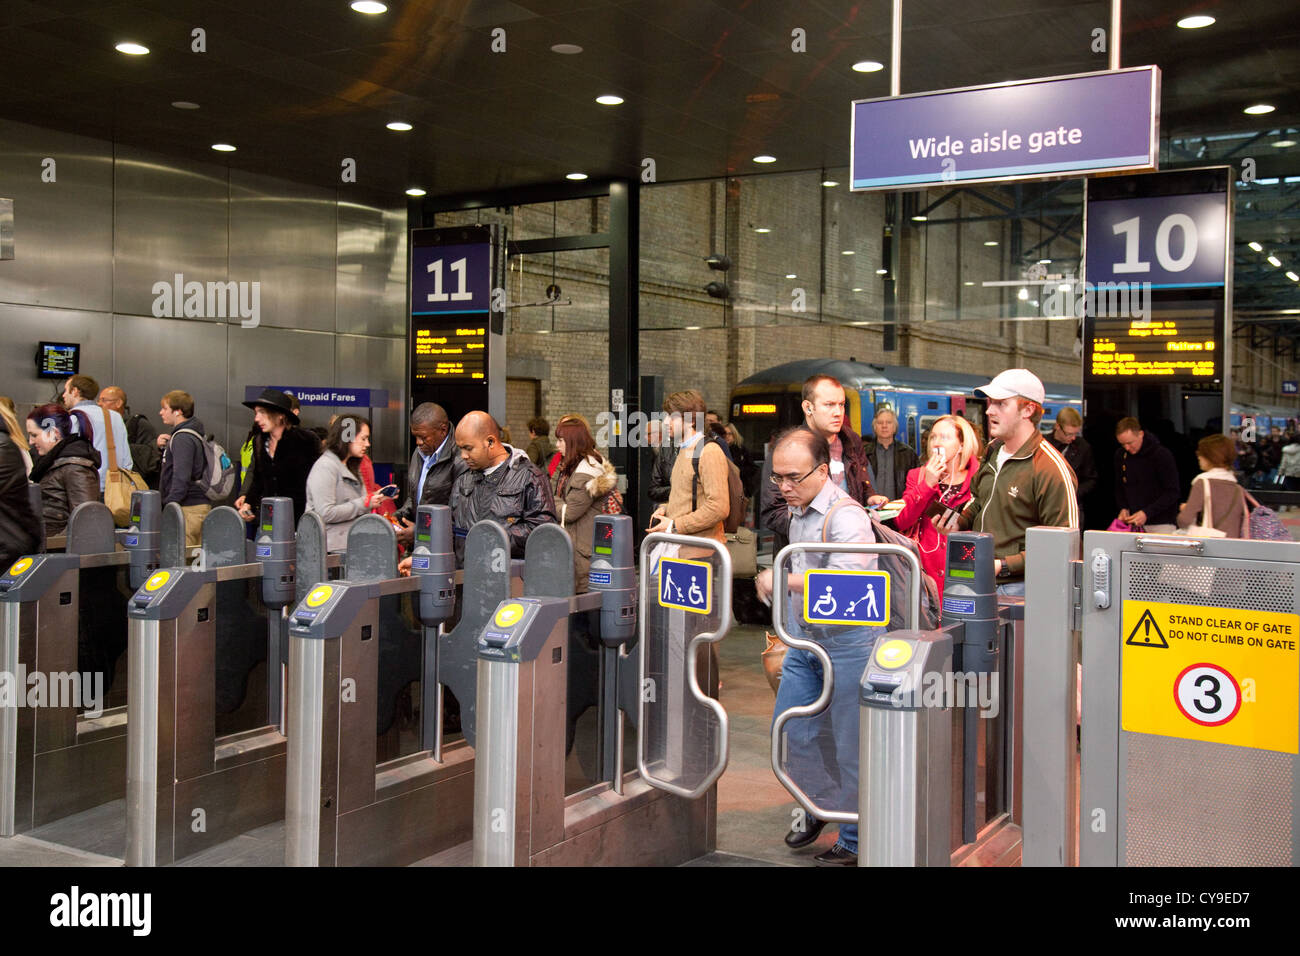 Rail passengers arriving by train and leaving the platform at Kings Cross station London, UK - Stock Image